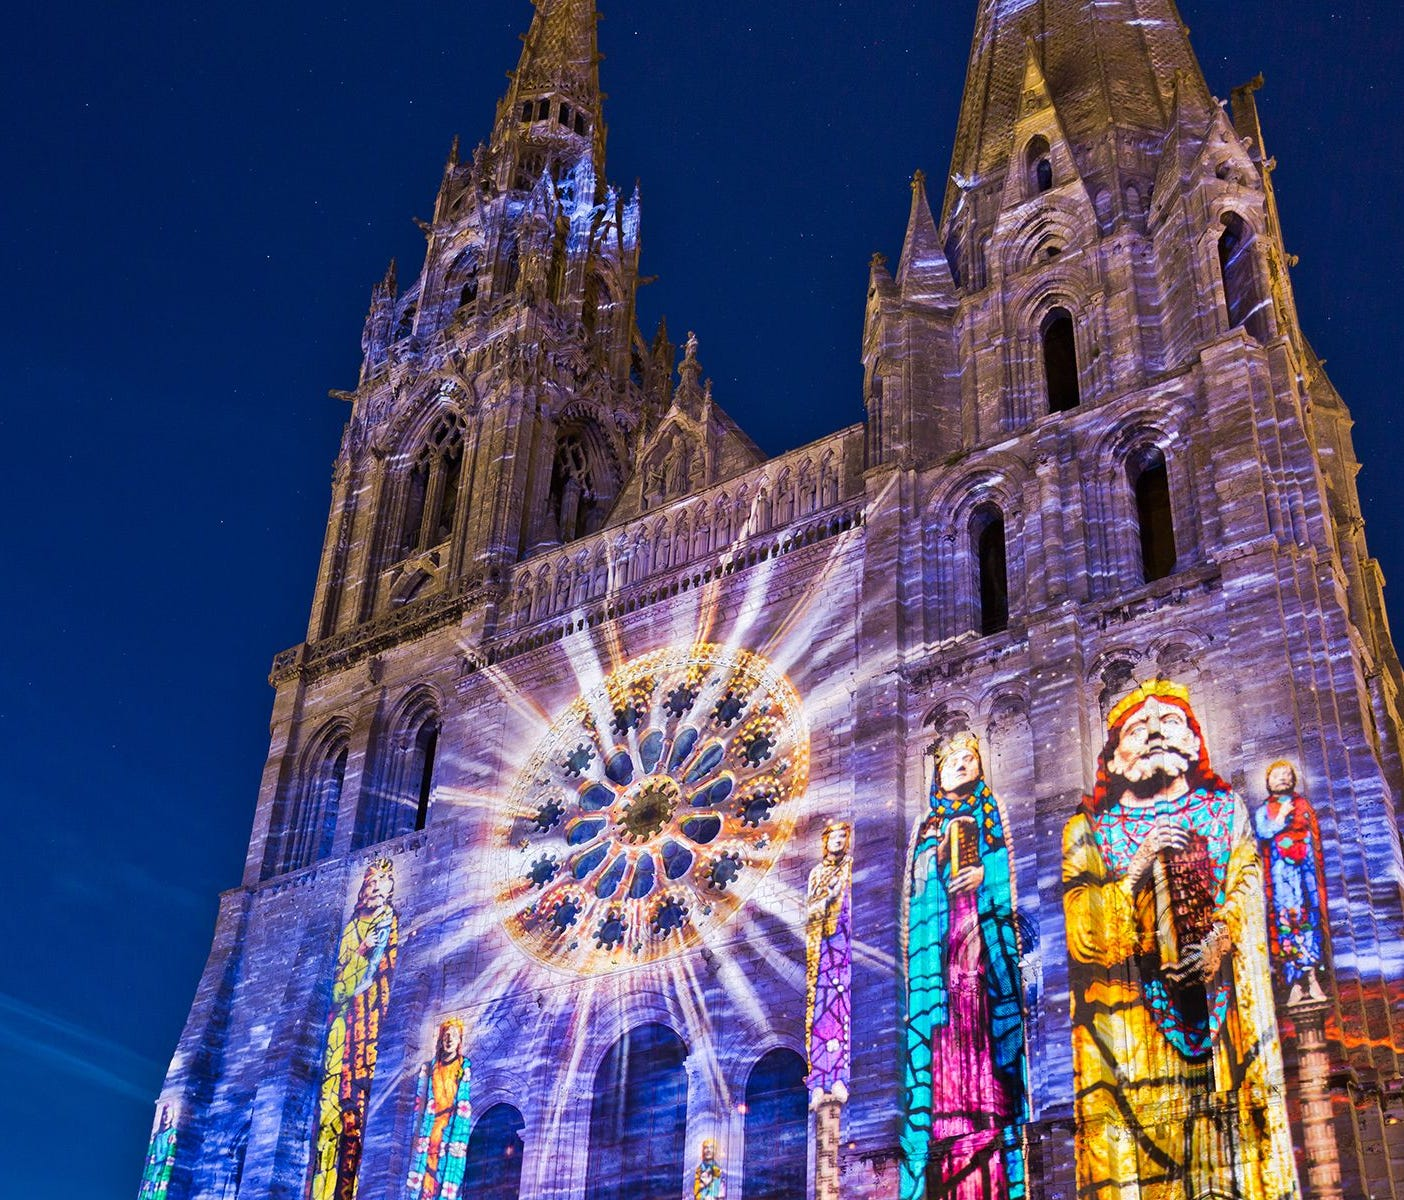 The town of Chartres is worth an overnight trip to take in its nighttime sound-and-light show, which incorporates 24 sites in an illuminated tour.